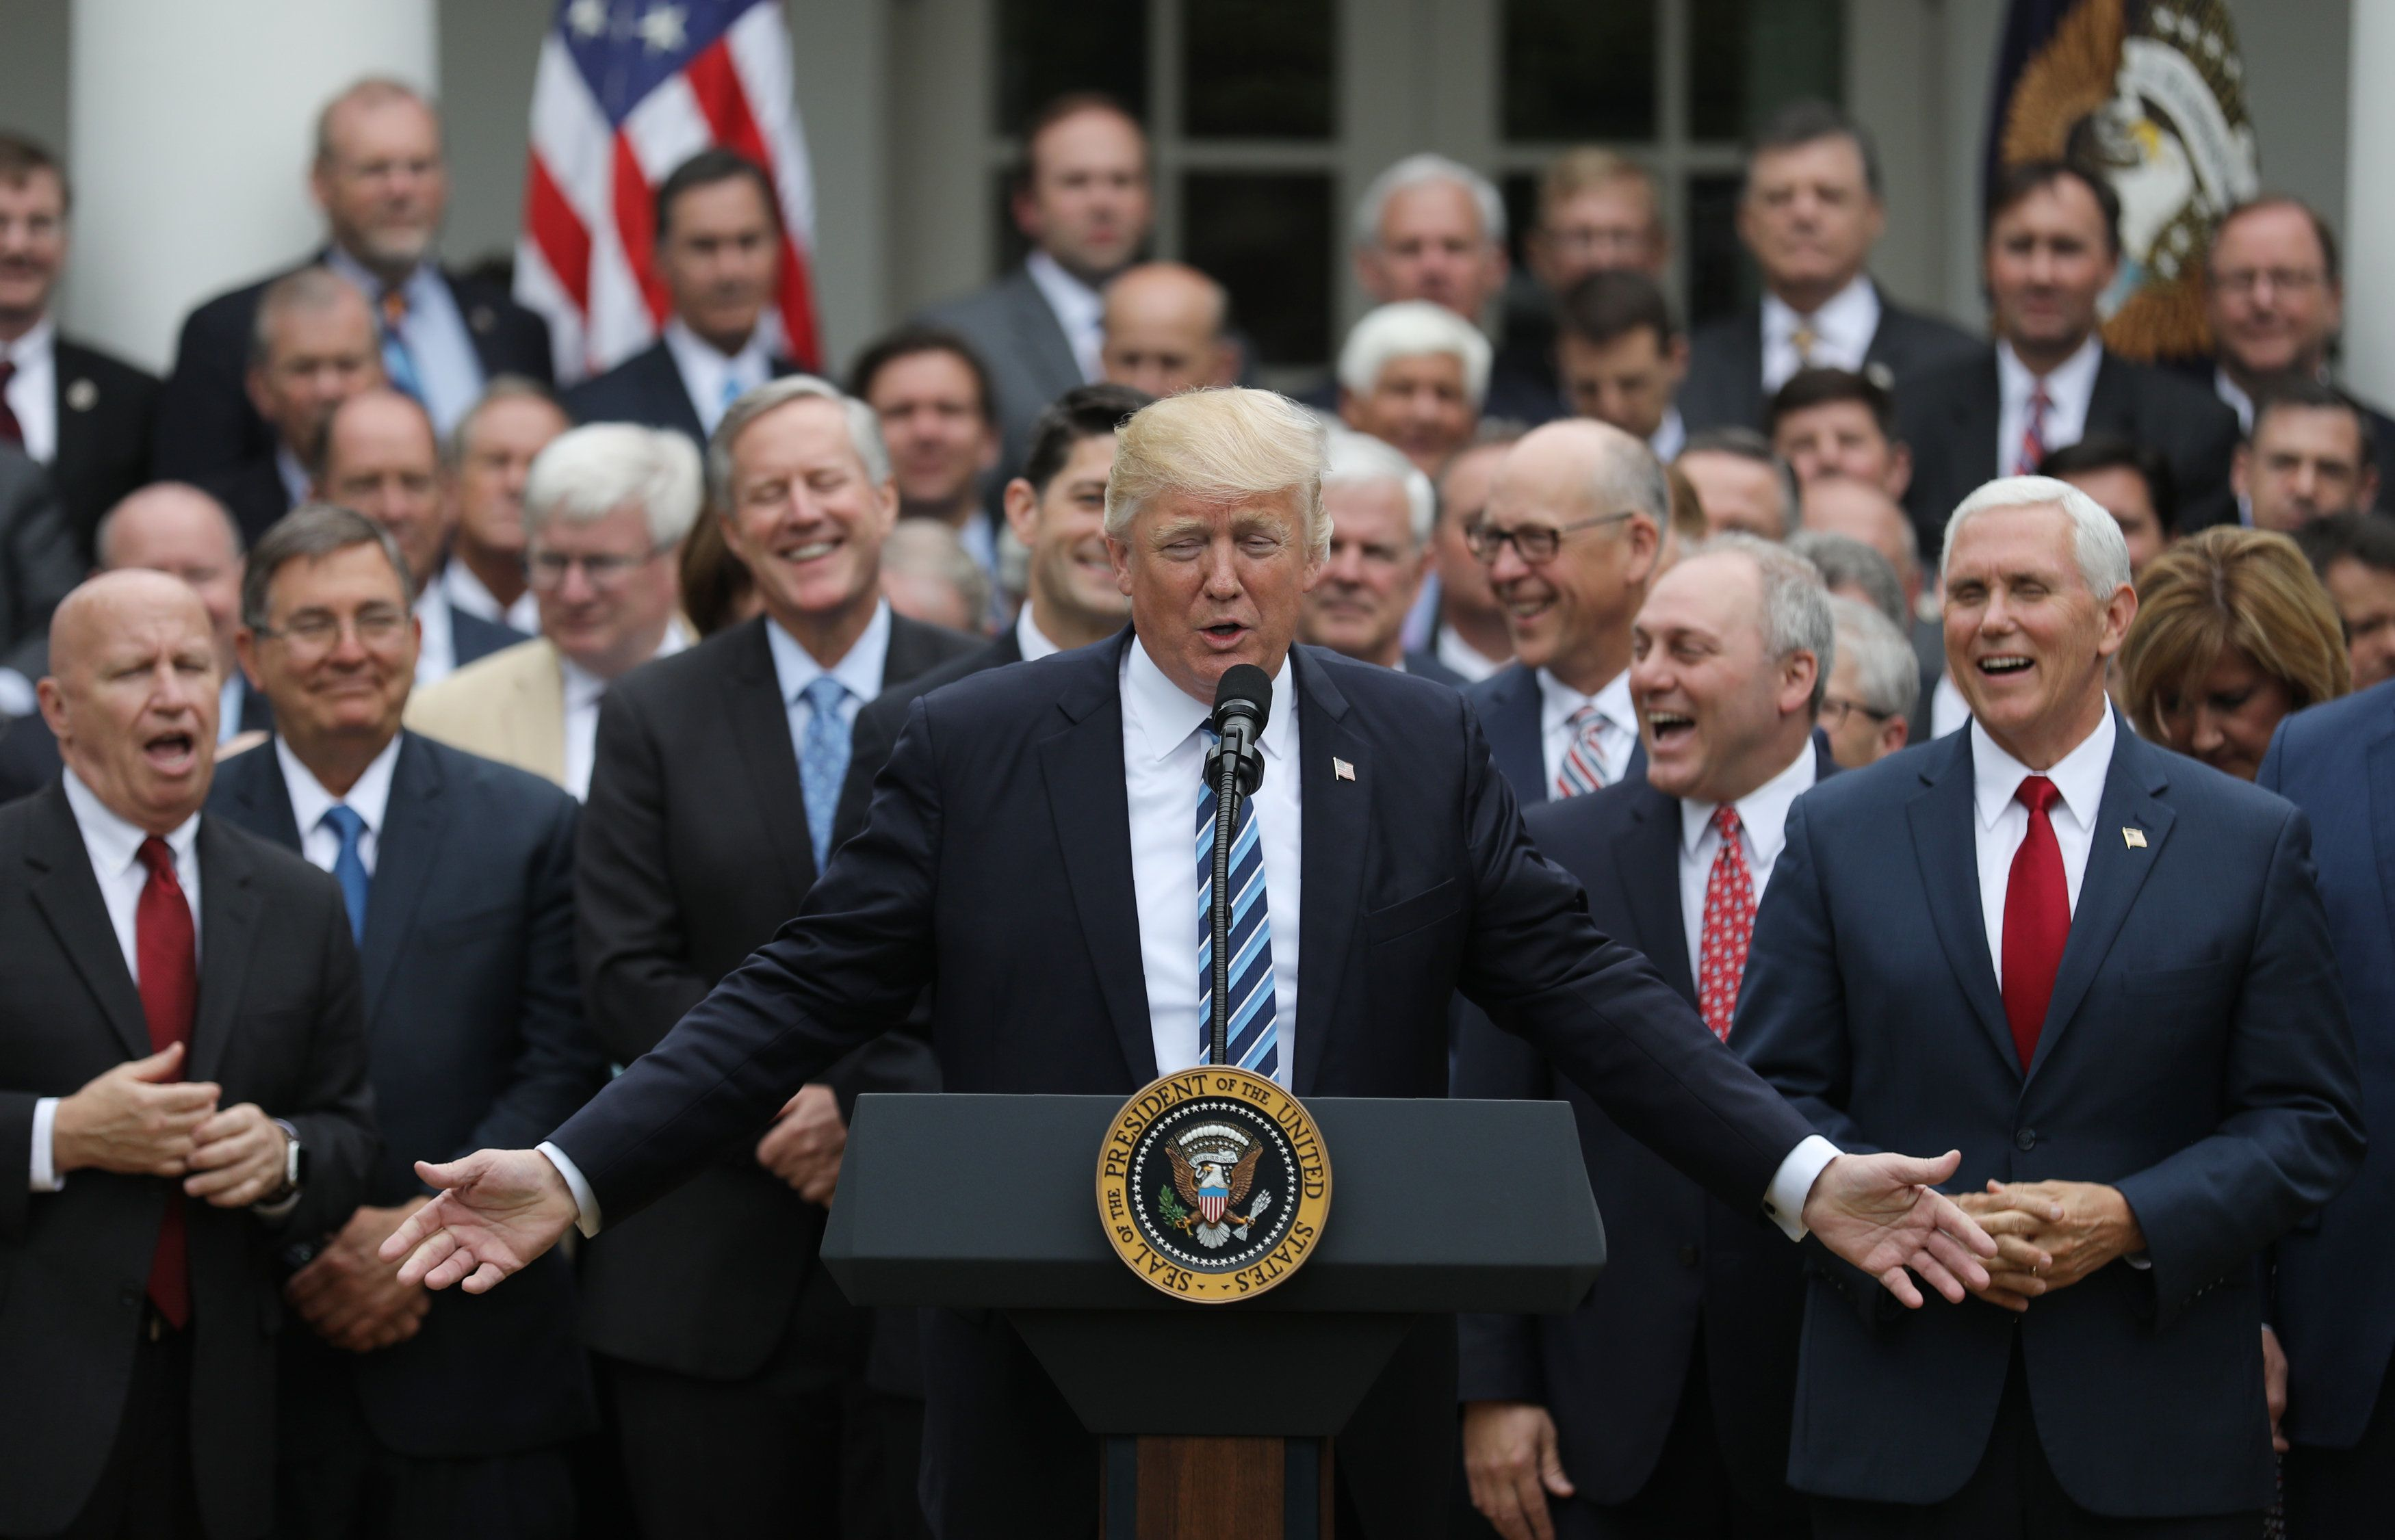 U.S. President Donald Trump (C) gathers with Vice President Mike Pence (R) and Congressional Republicans in the Rose Garden of the White House after the House of Representatives approved the American Healthcare Act, to repeal major parts of Obamacare and replace it with the Republican healthcare plan, in Washington, U.S., May 4, 2017. REUTERS/Carlos Barria